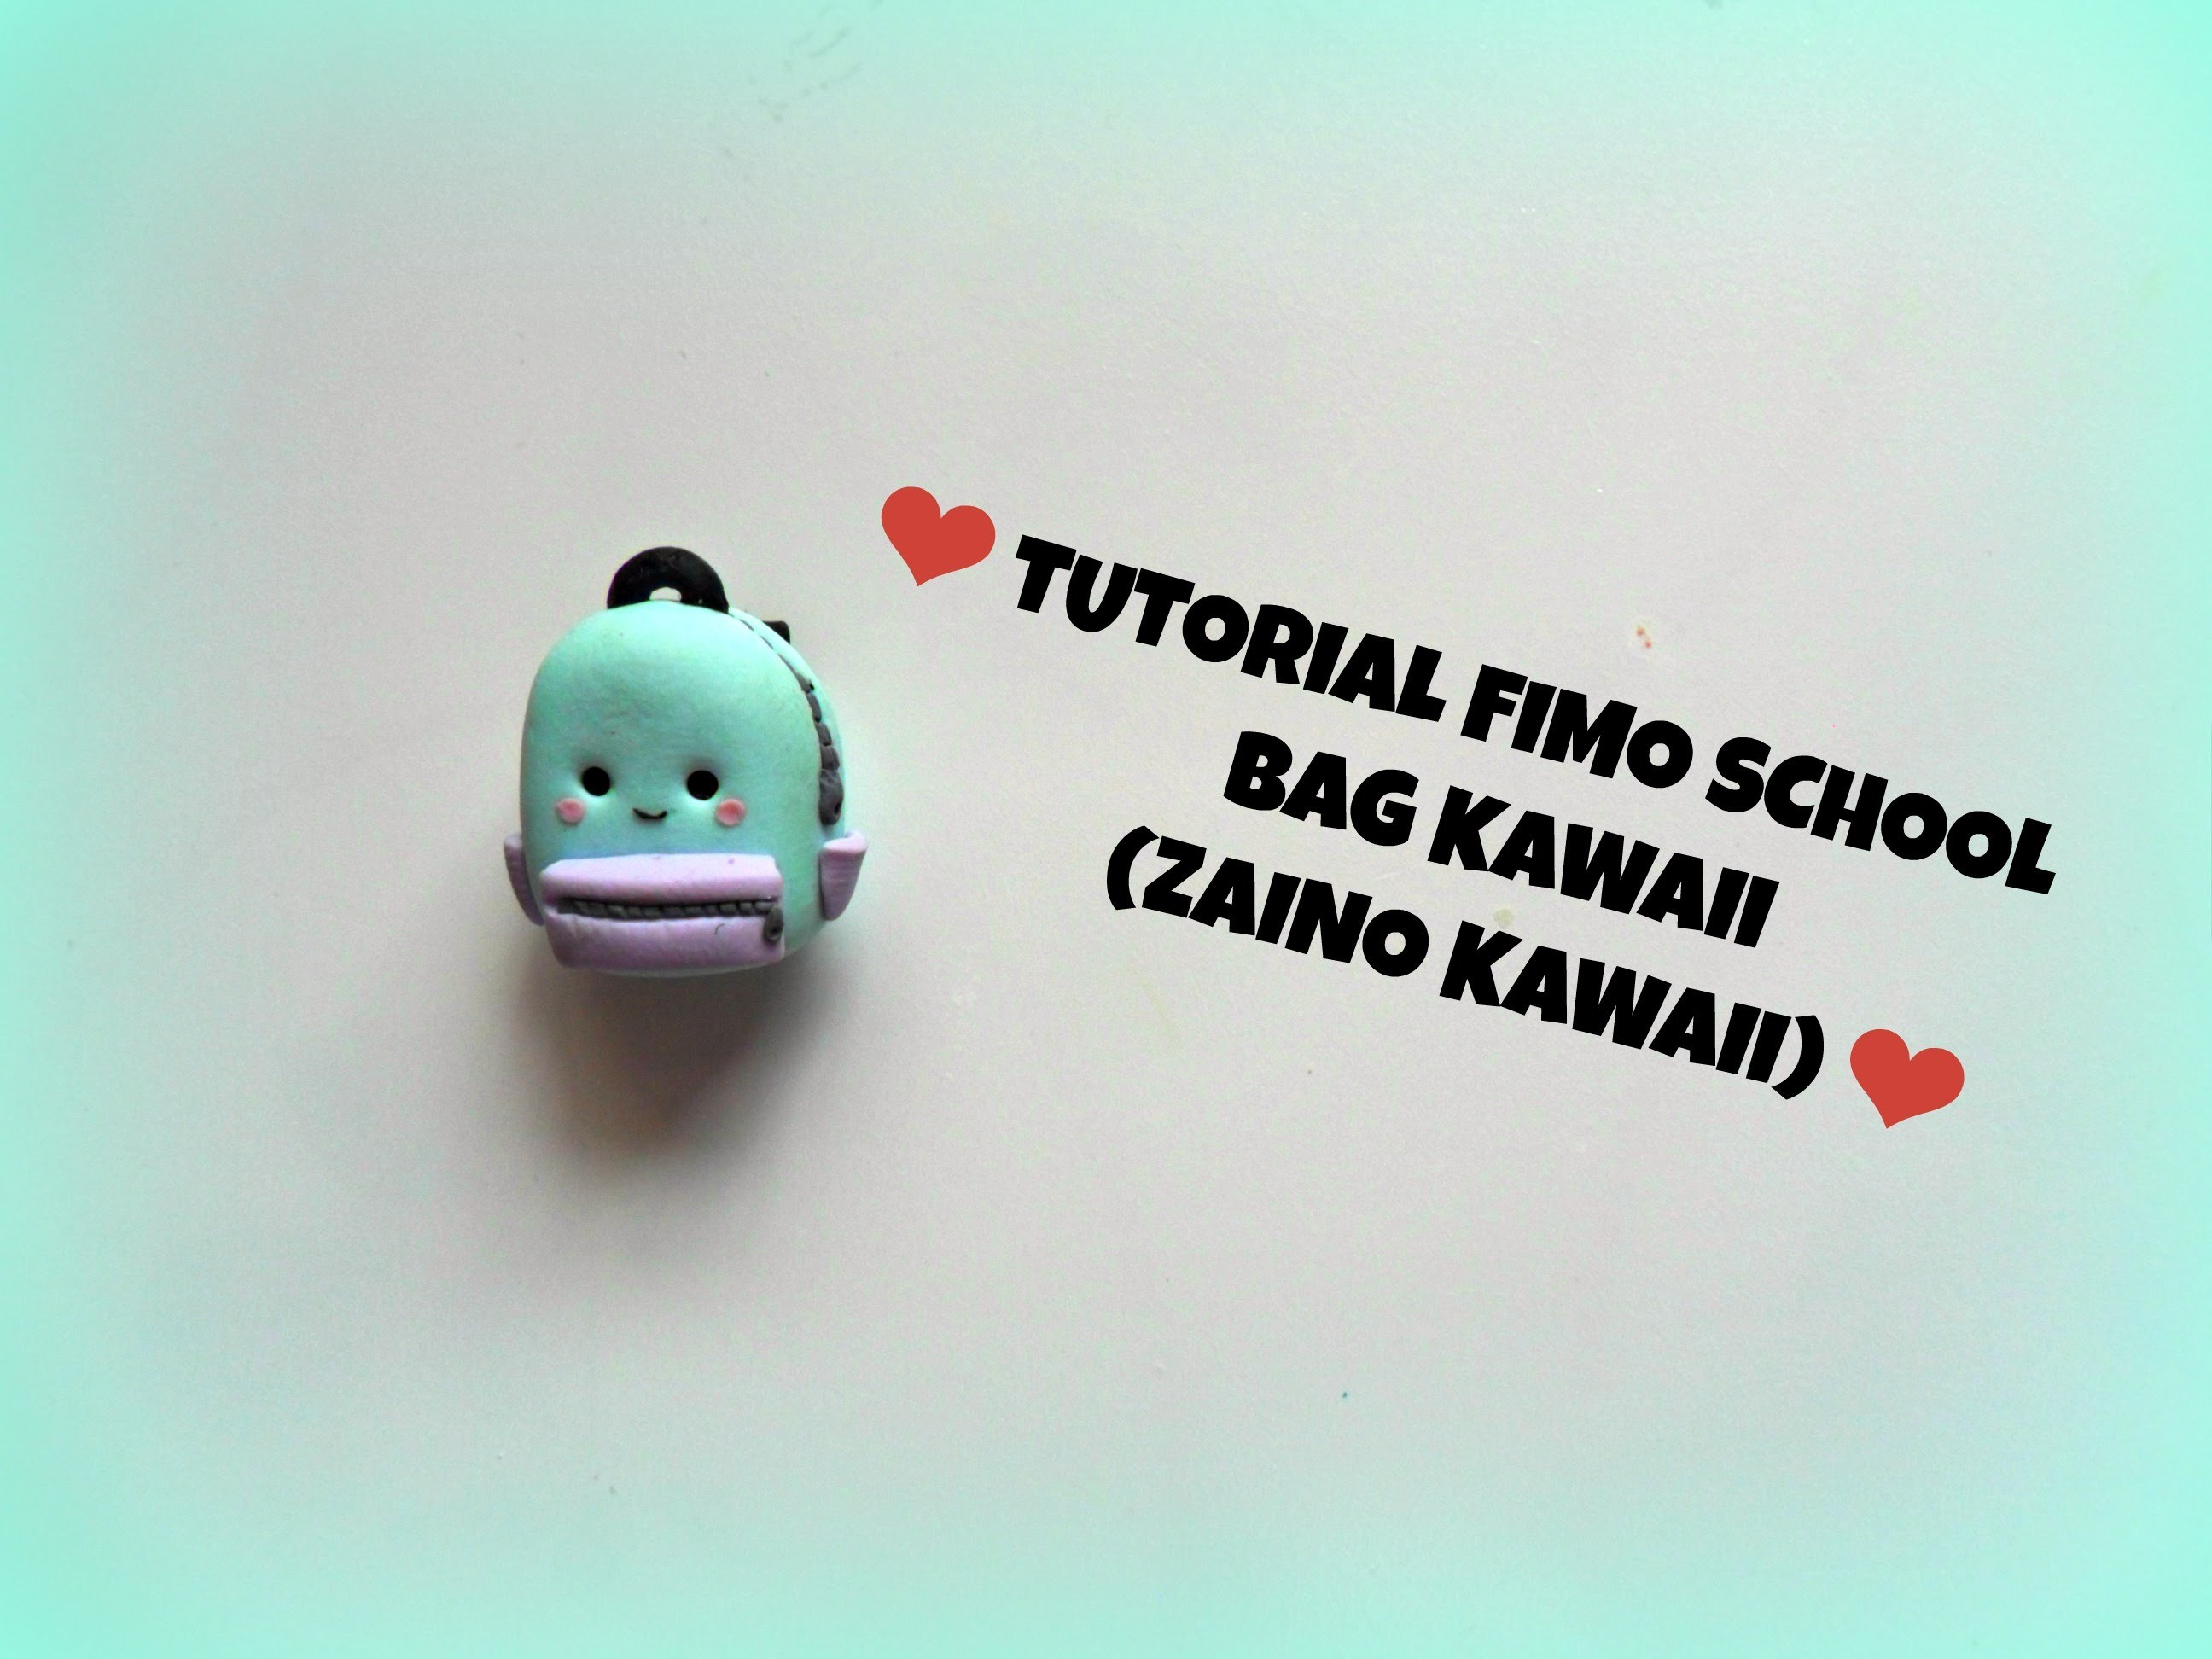 TUTORIAL FIMO school bag KAWAII (zainetto kawaii)